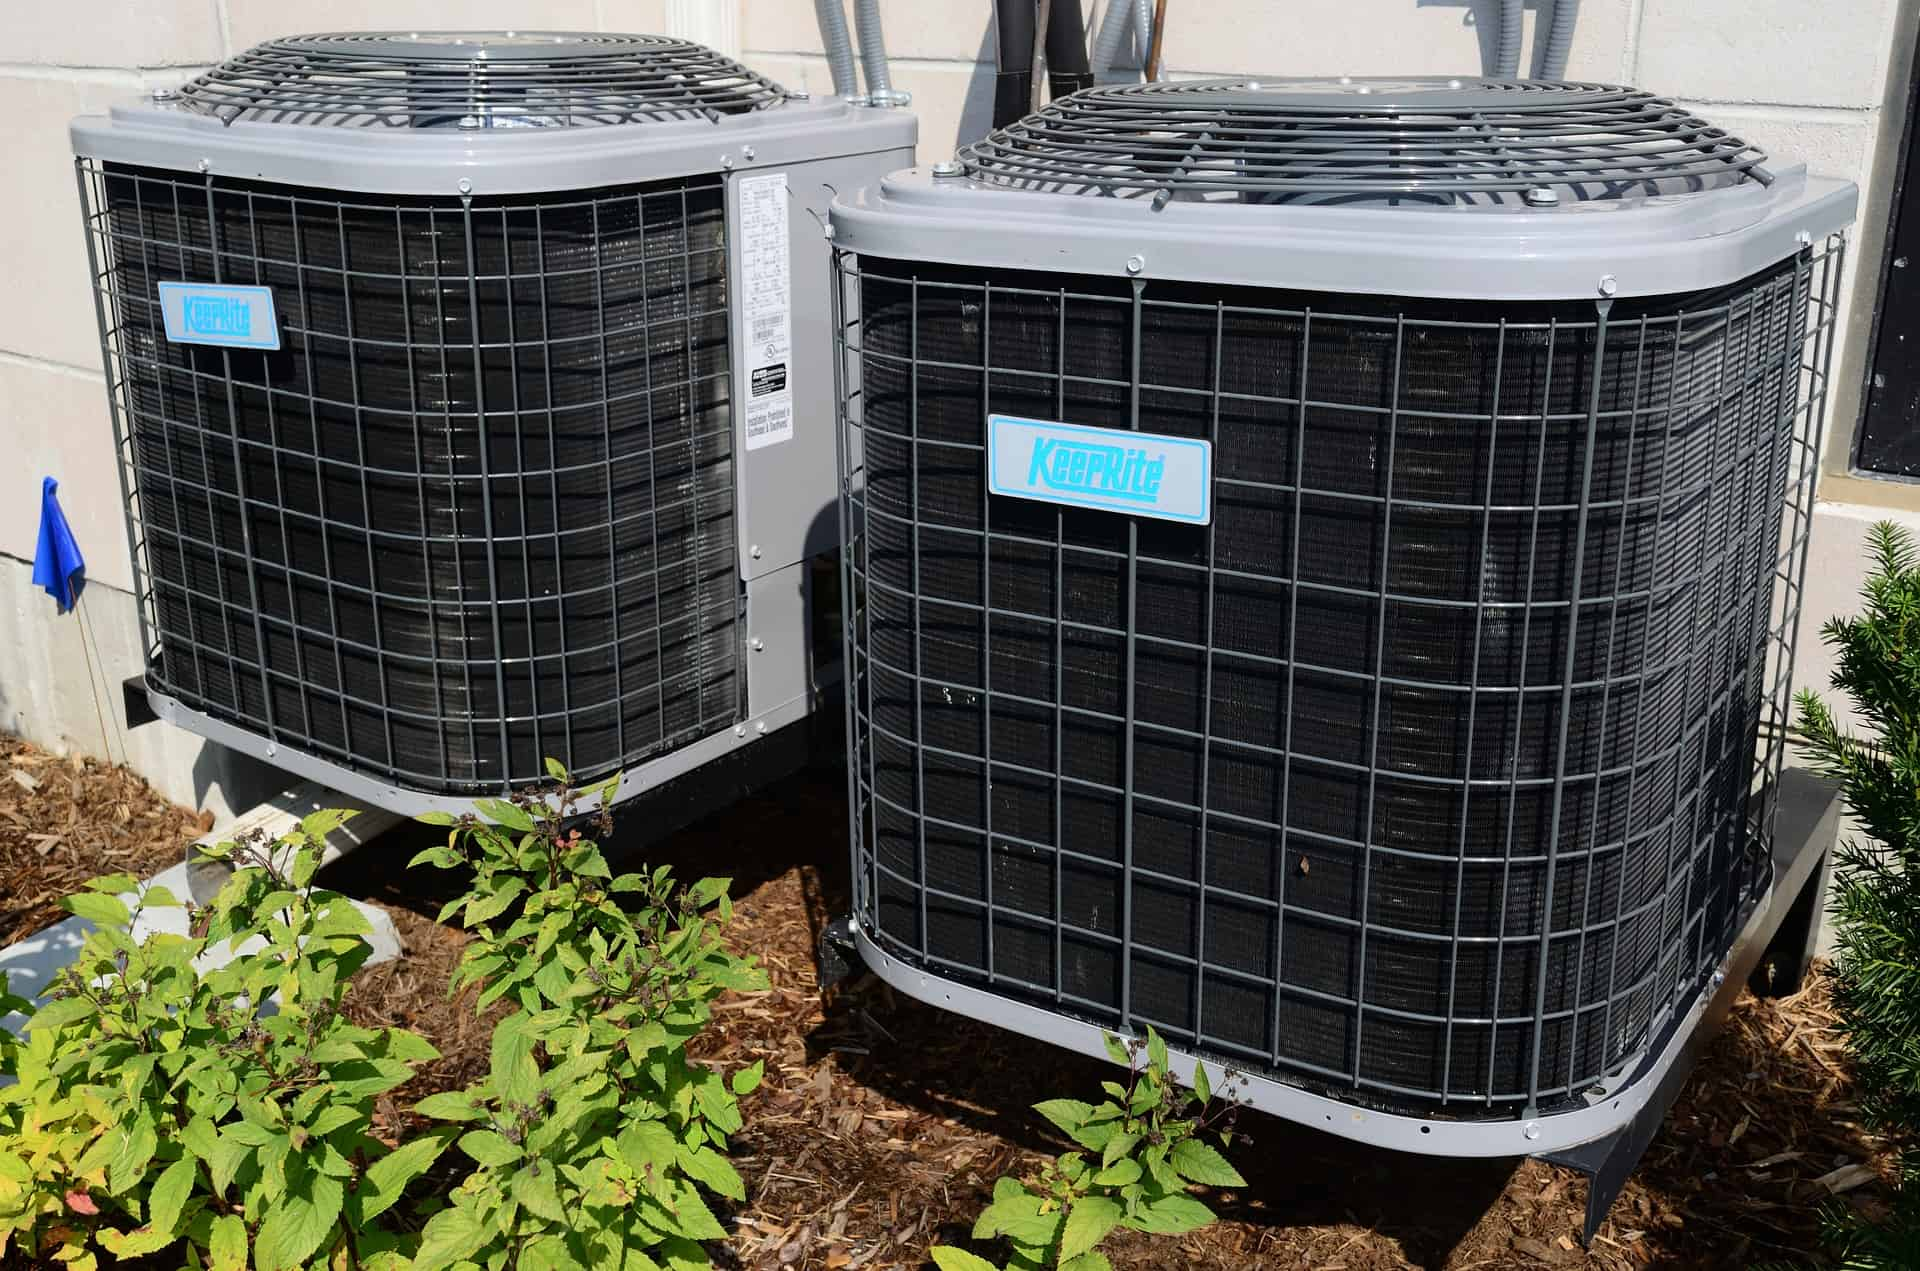 Two air conditioner units